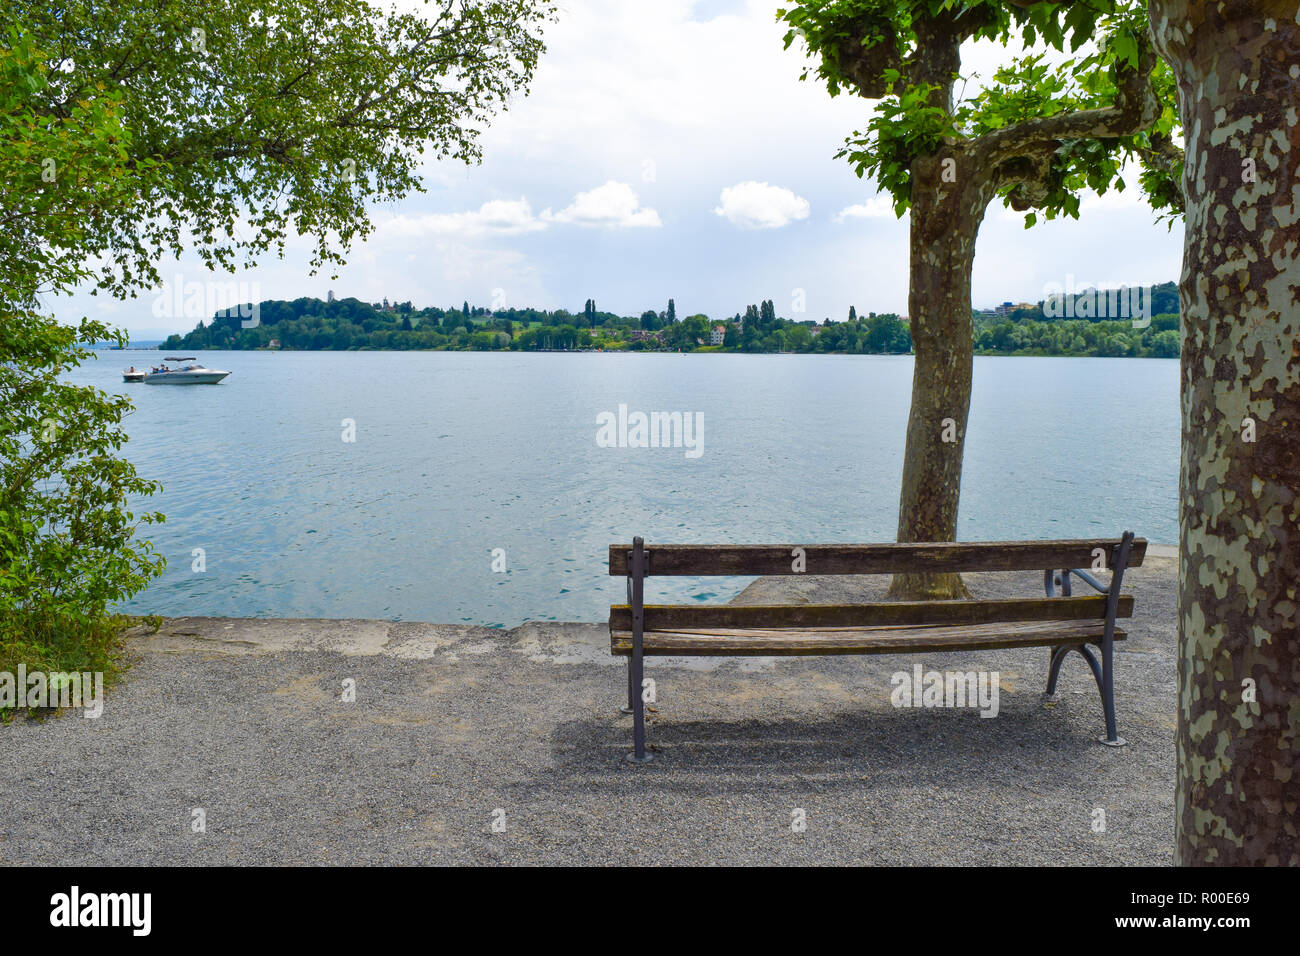 mainau island view through trees over lake constance, Bodensee, bench front of lake blue sky and island - Stock Image